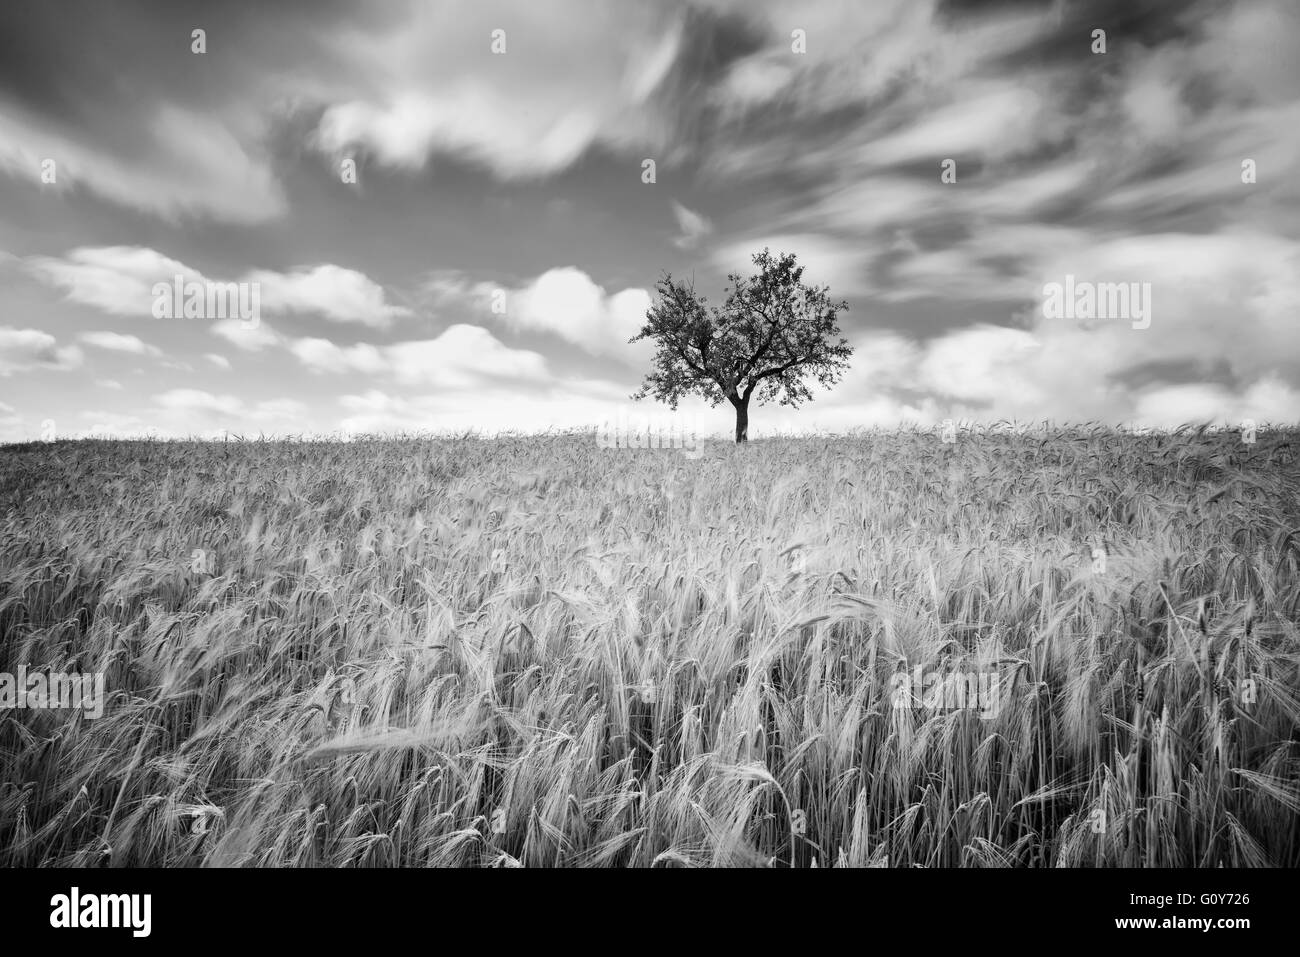 Green wheat on a grain field in spring, black and white photography with long exposure - Stock Image